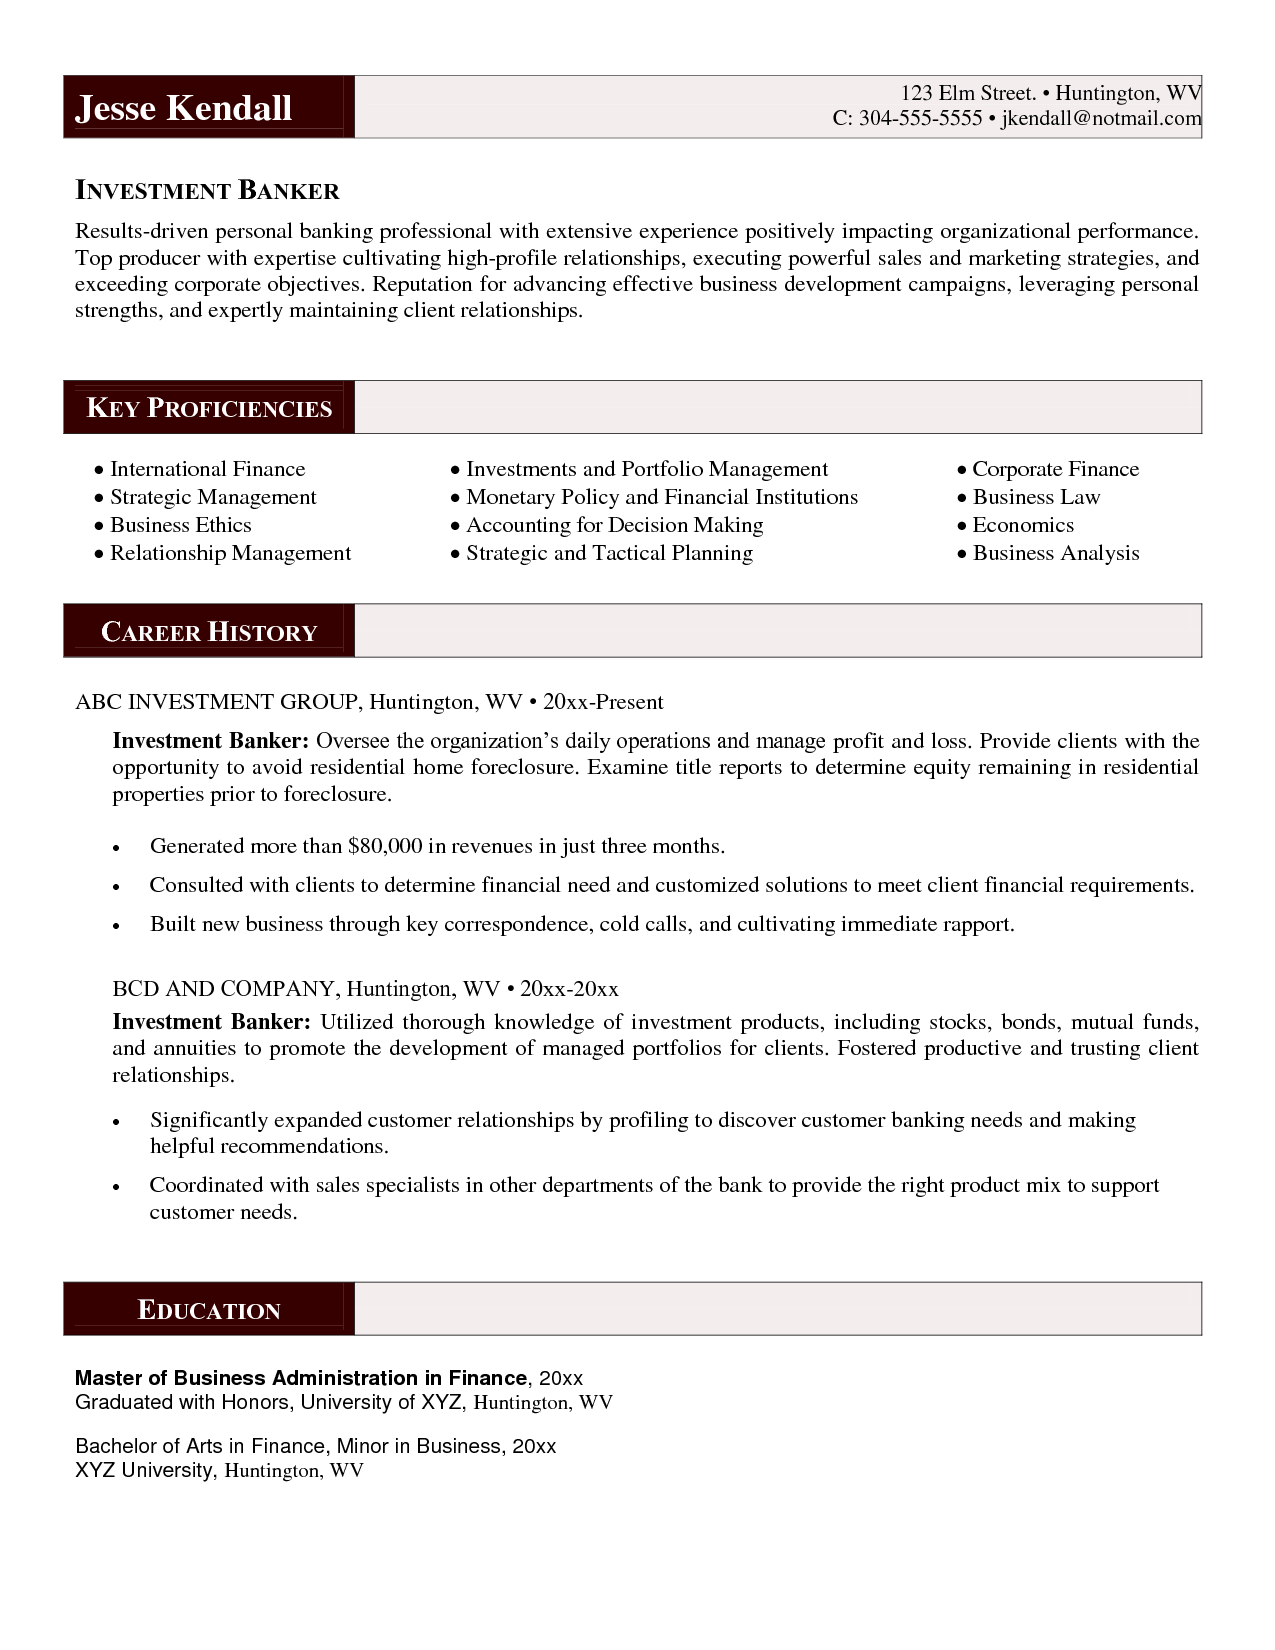 Investment Banker Resume Sample Httpresumecareerfo